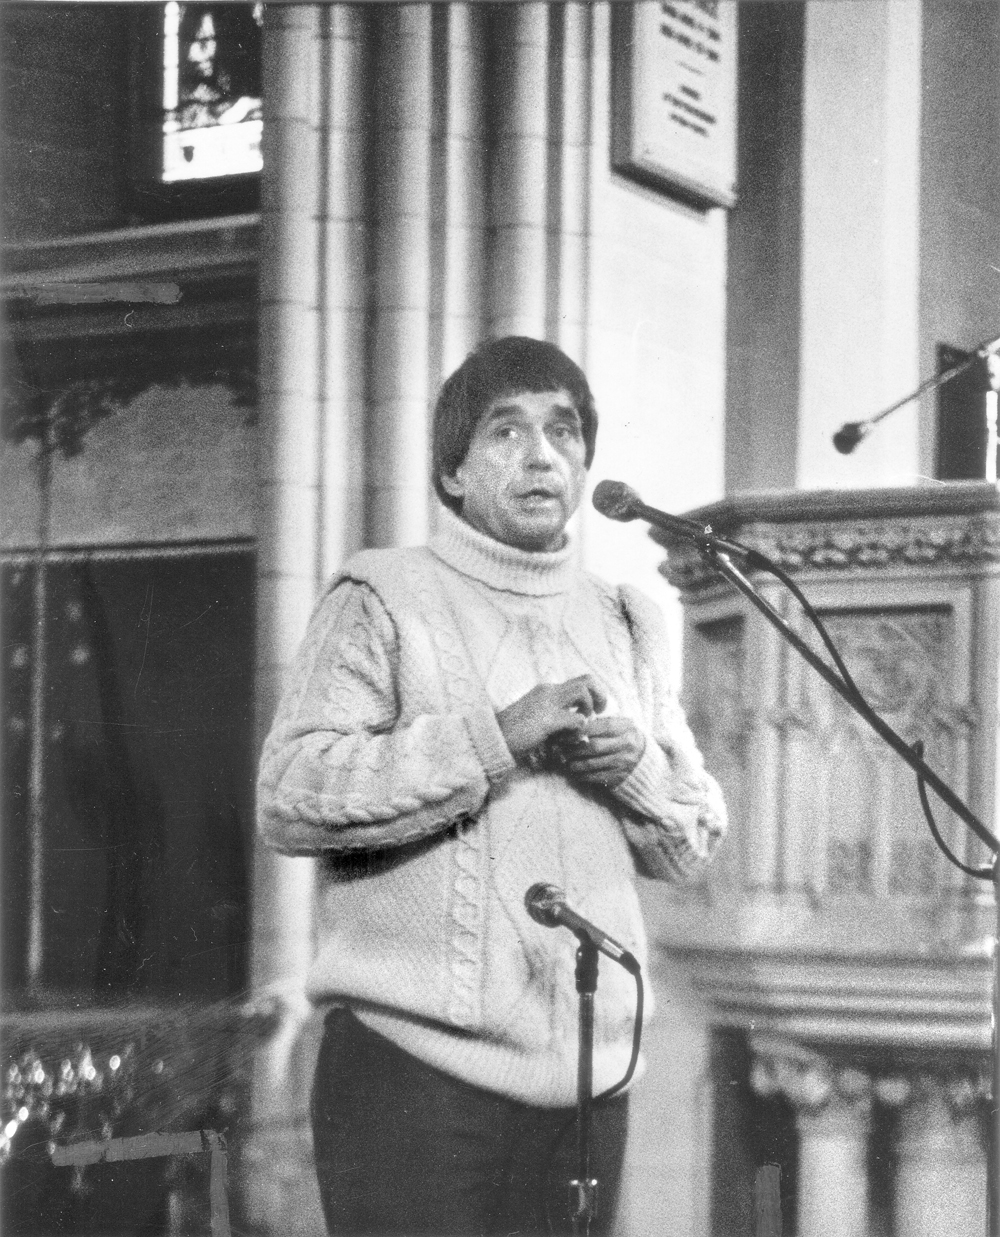 America Is Hard to Find | Rev. Daniel Berrigan speaks before about 1,000 people in Sage Chapel on January 26, 1975 to give the first sermon of that spring semester. It was Berrigan's first public ­appearance on the Cornell campus since April 1970 when he stunned a throng of 15,000 by appearing at a Barton Hall celebration in his honor, even though he was then a fugitive being actively hunted by the FBI.